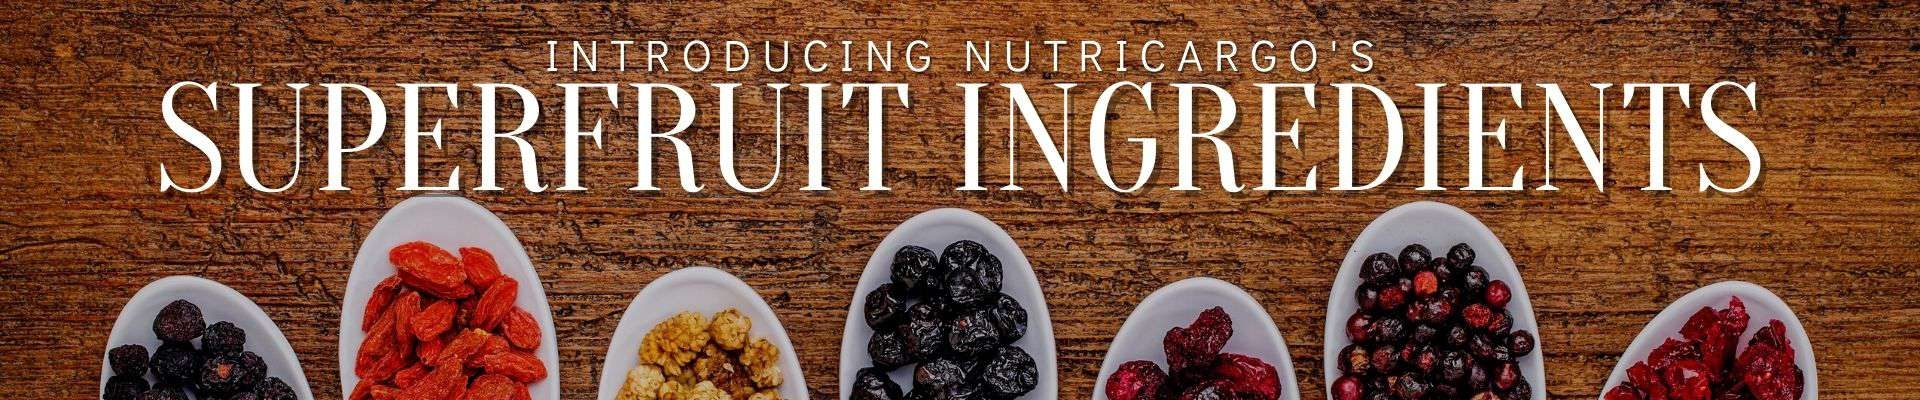 Superfruit Powders From NutriCargo, LLC